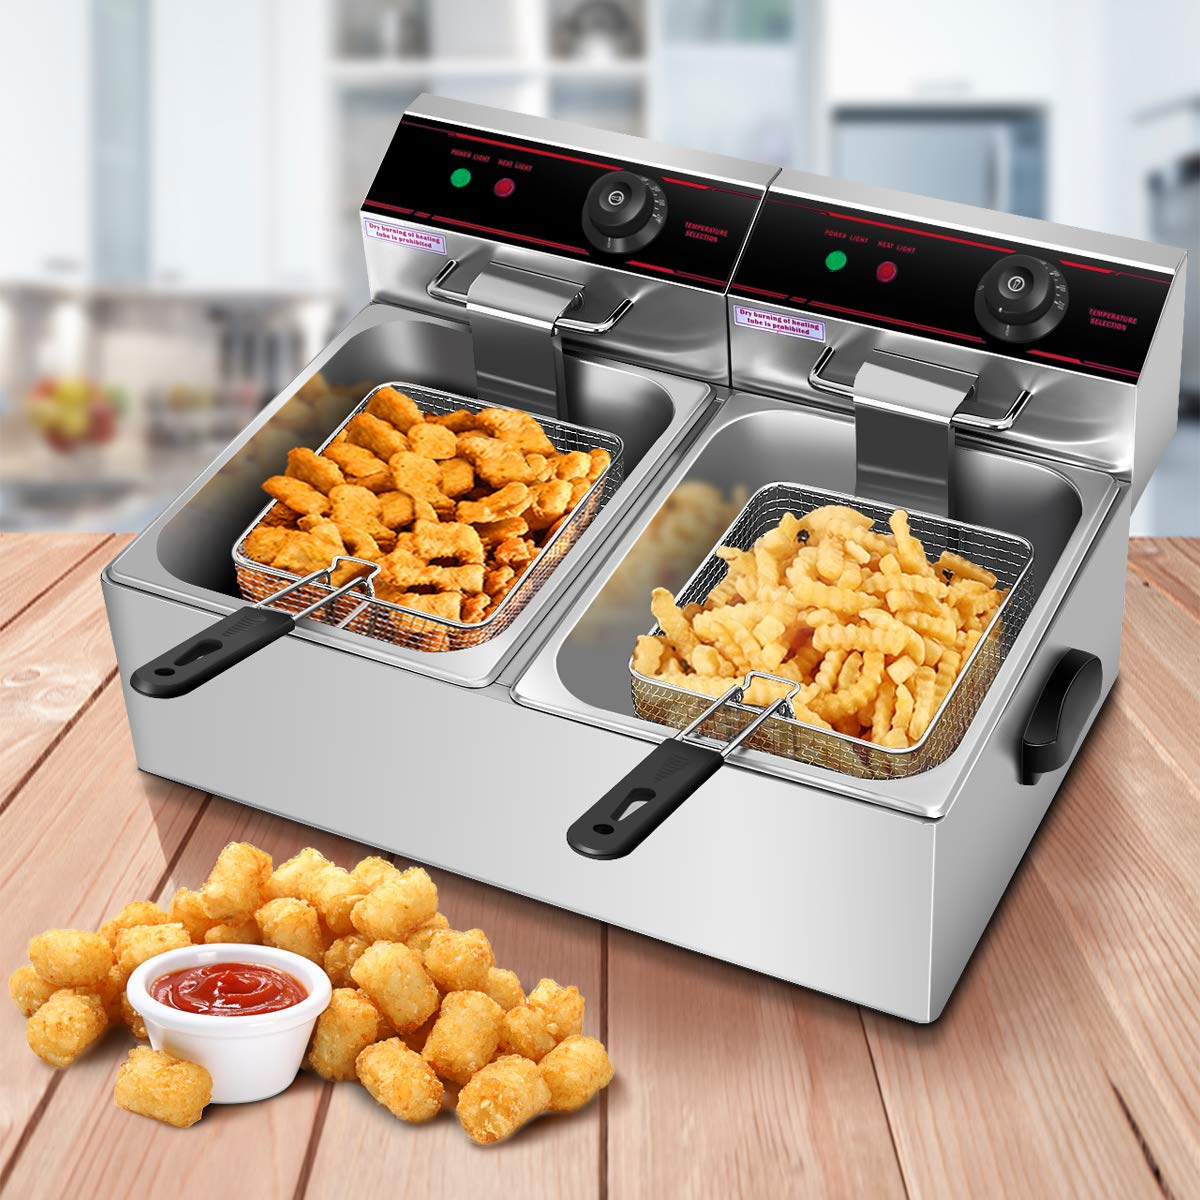 Safstar Professional Electric Deep Fryer, Stainless Steel Chicken Chips Fryer with Basket Scoop for Commercial Restaurant Countertop Family Food Cooking (Dual Tank)